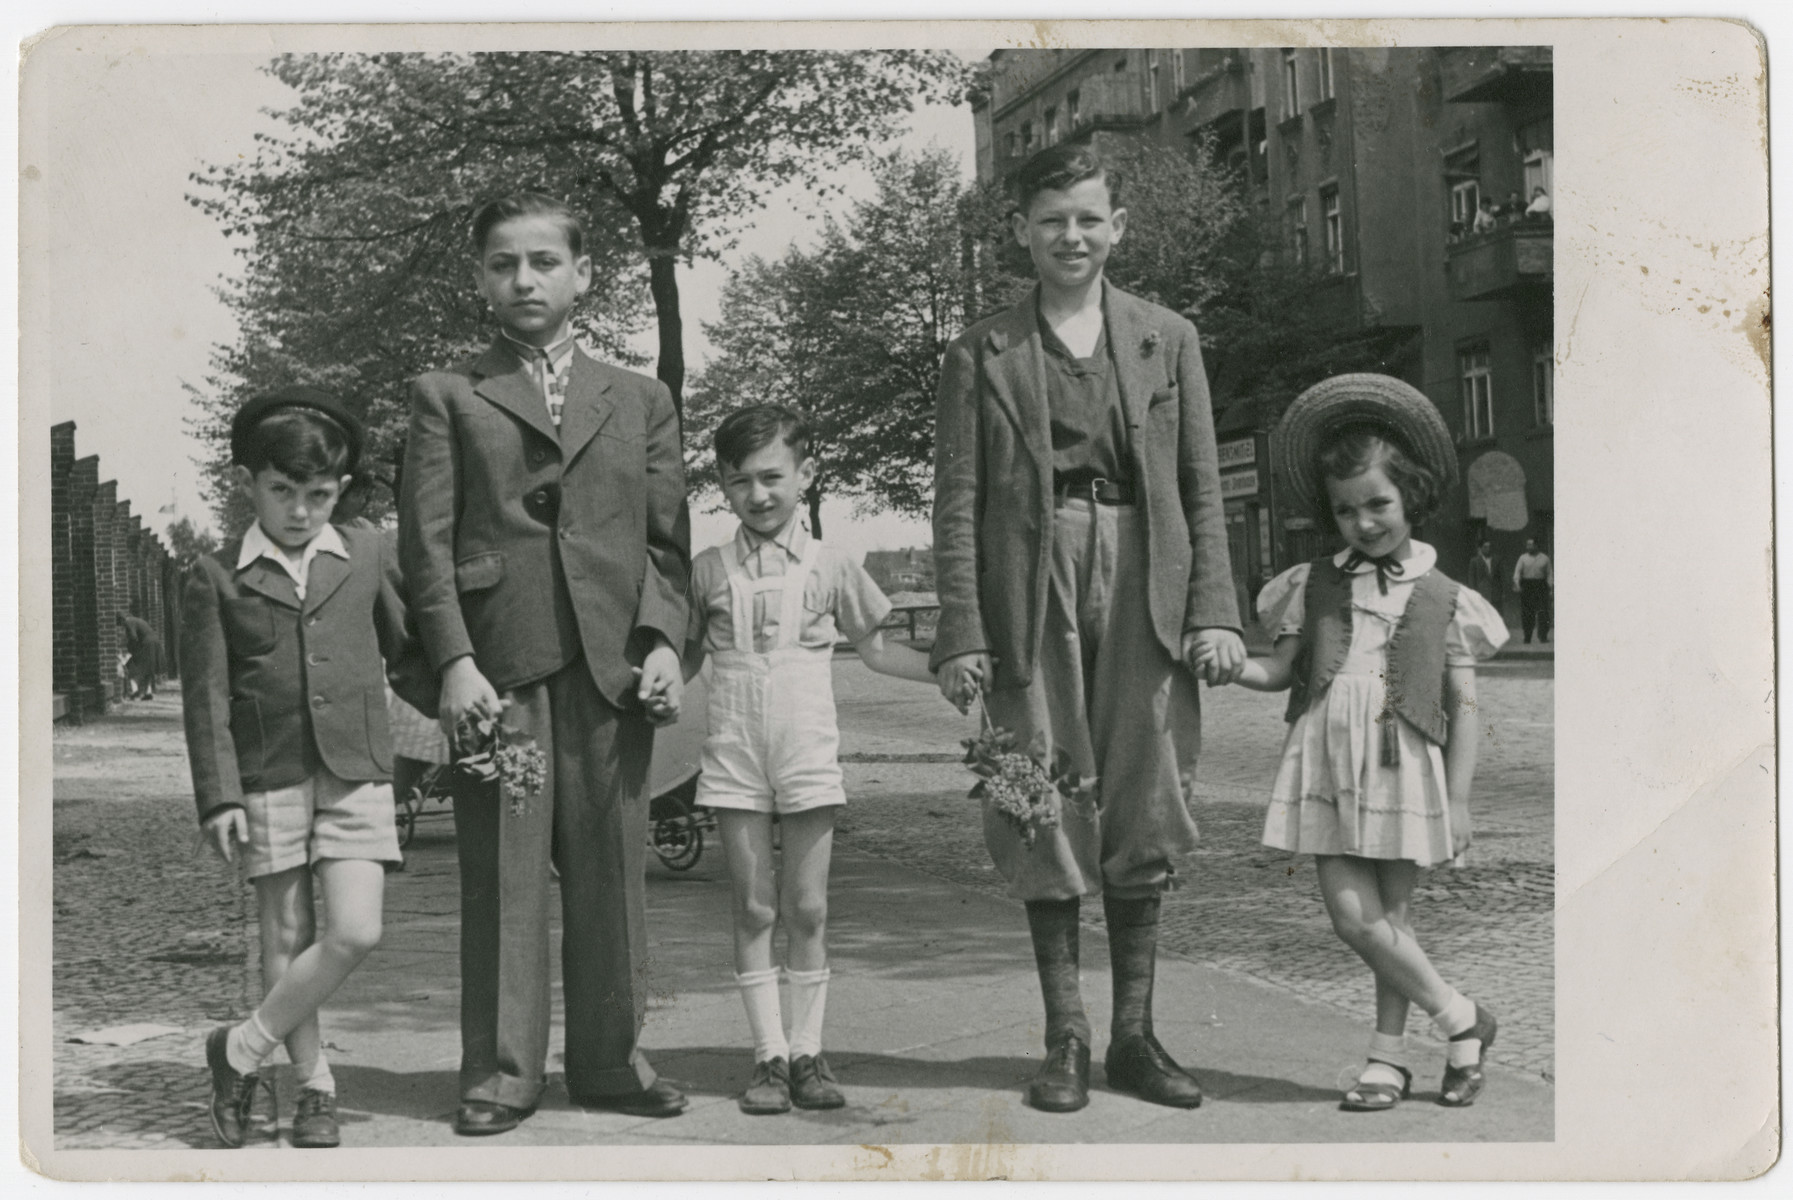 Portrait of five children from the Schlachtensee displaced persons camp holding hands.  Nathan Rubinstein is pictured second from the right.  His brother Benny is next to him in the center.